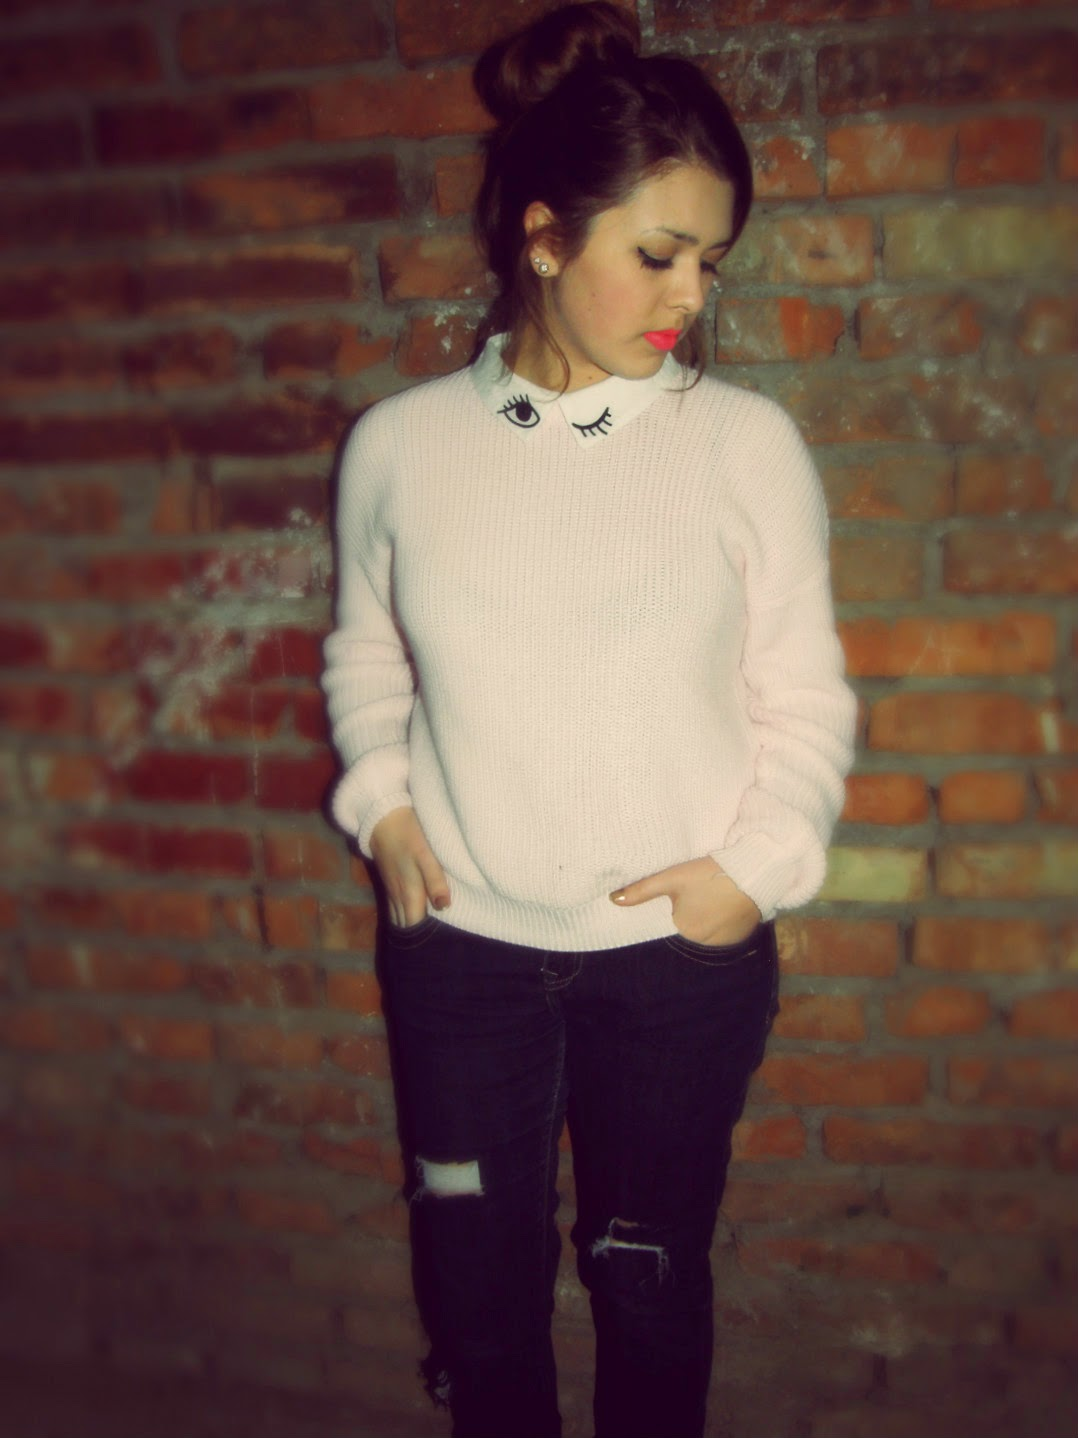 Girly sweater :)